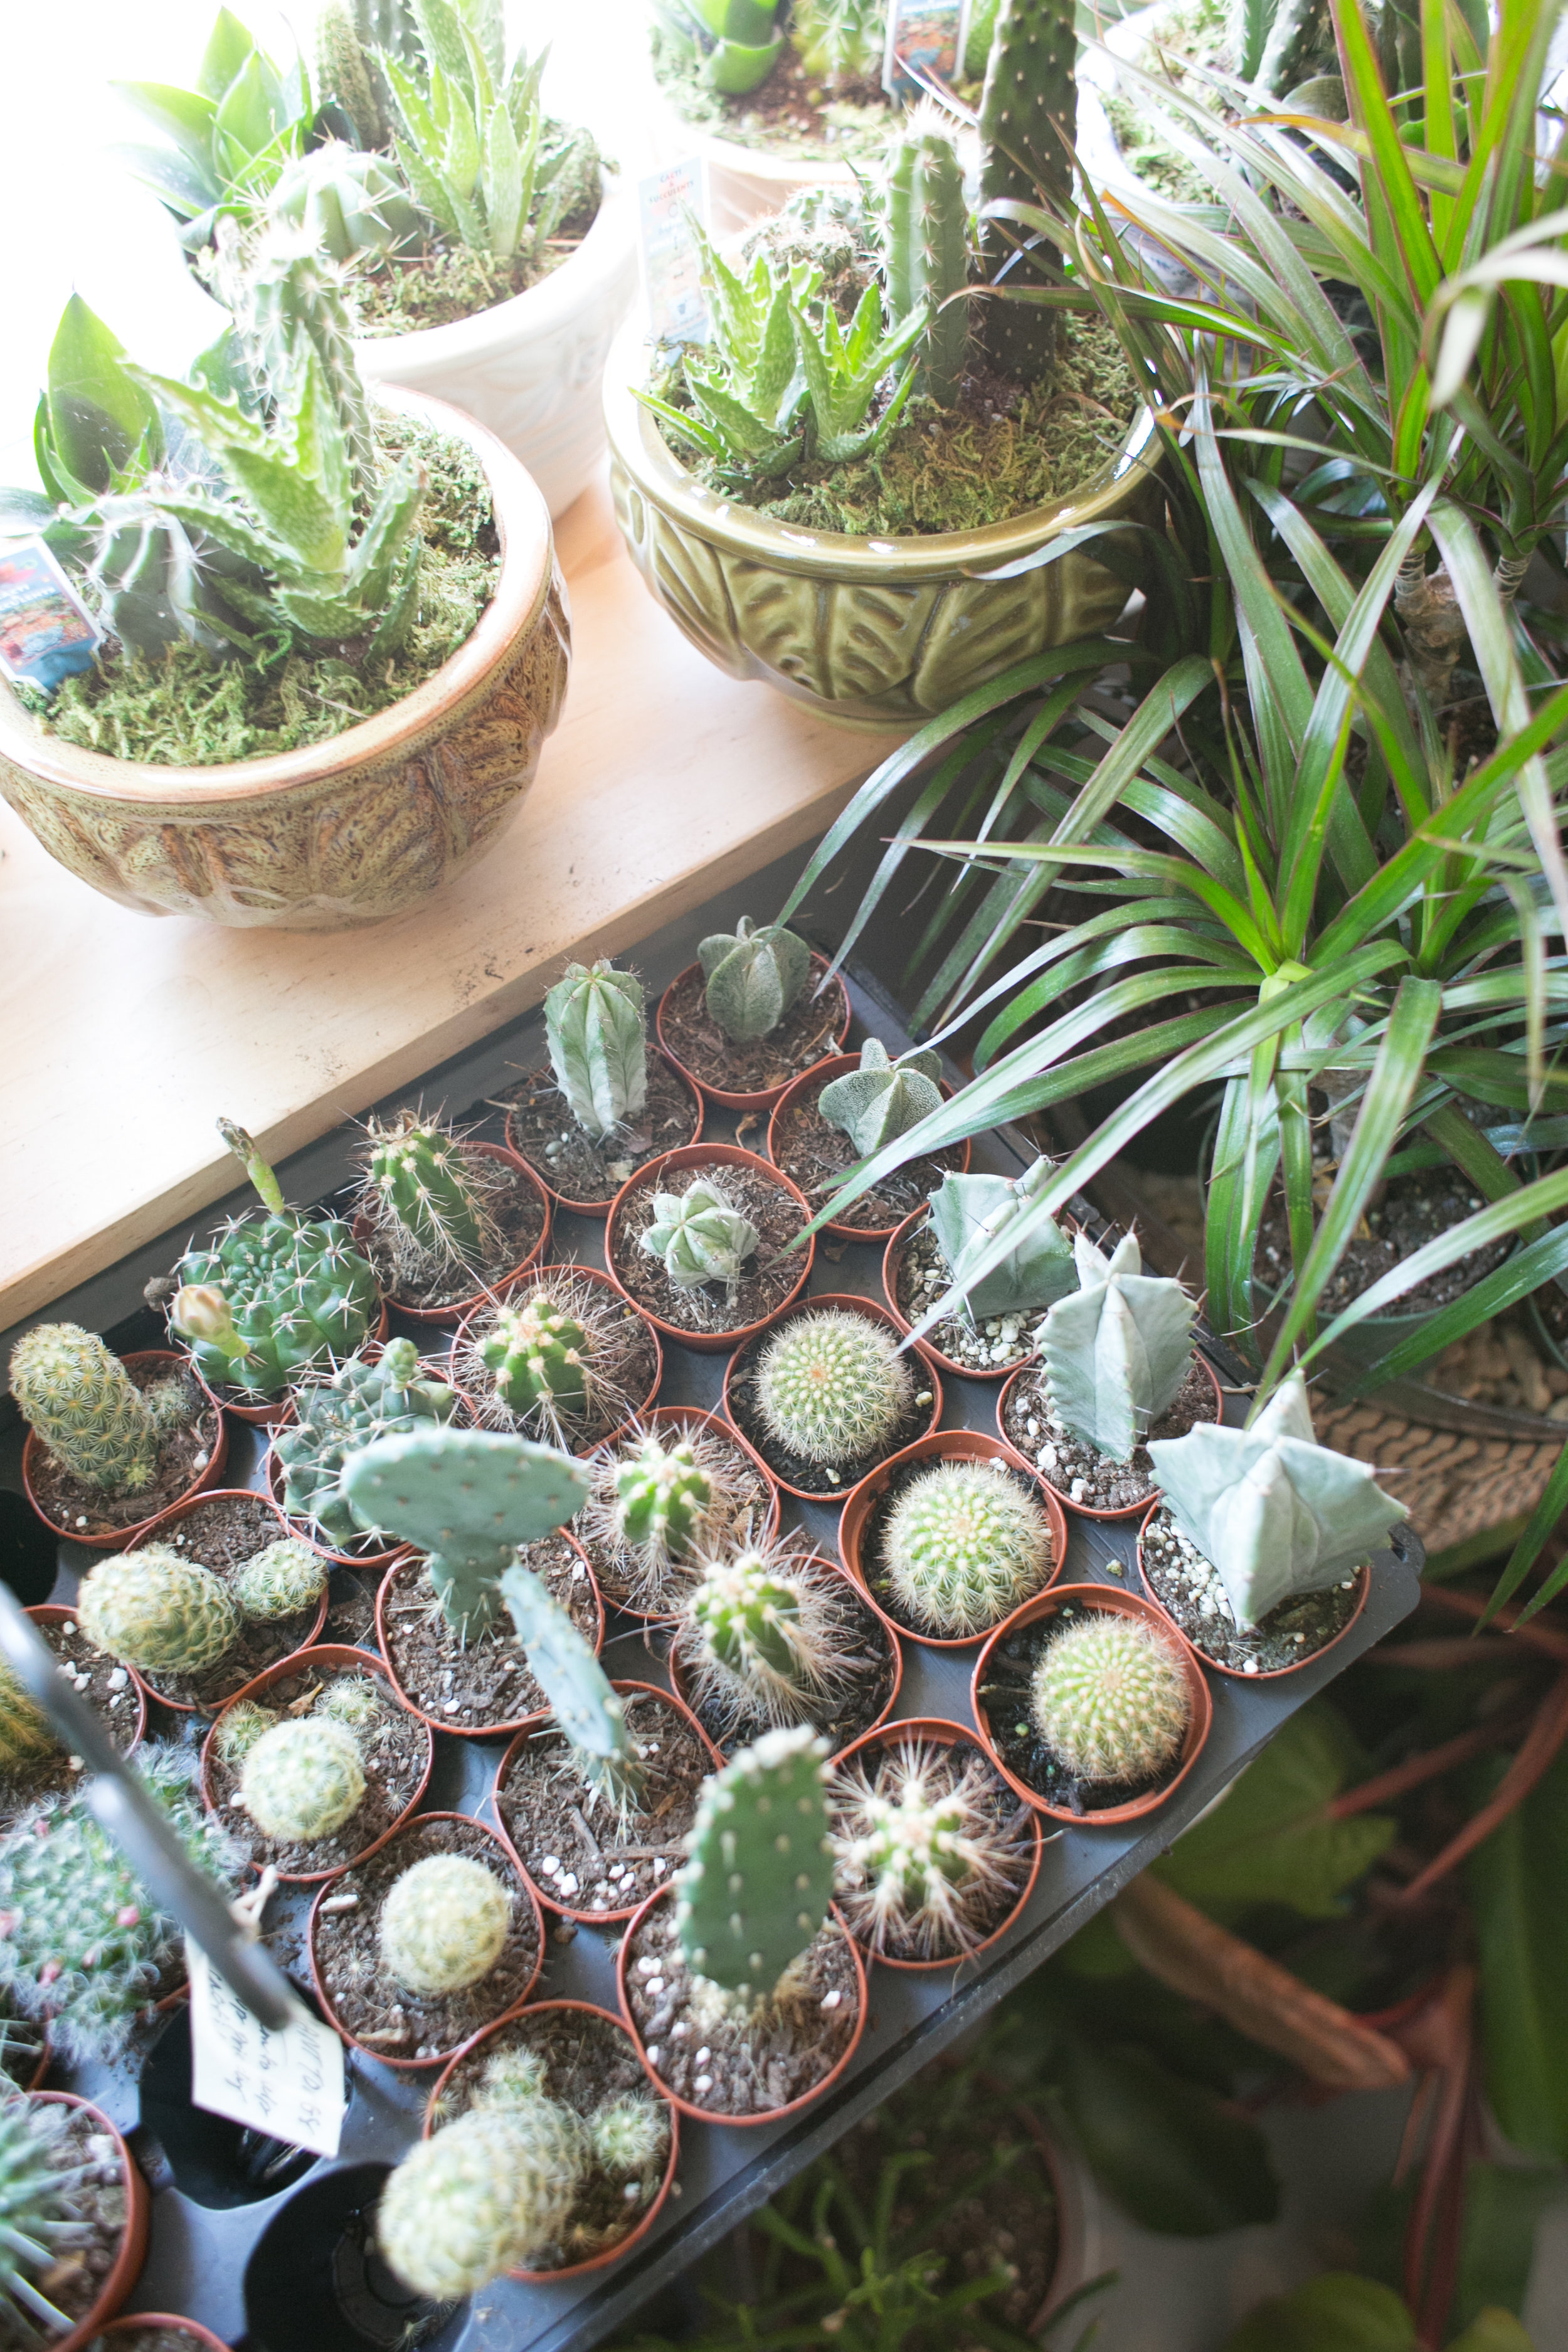 When it comes to cacti, the drier the soil, the happier the plant.